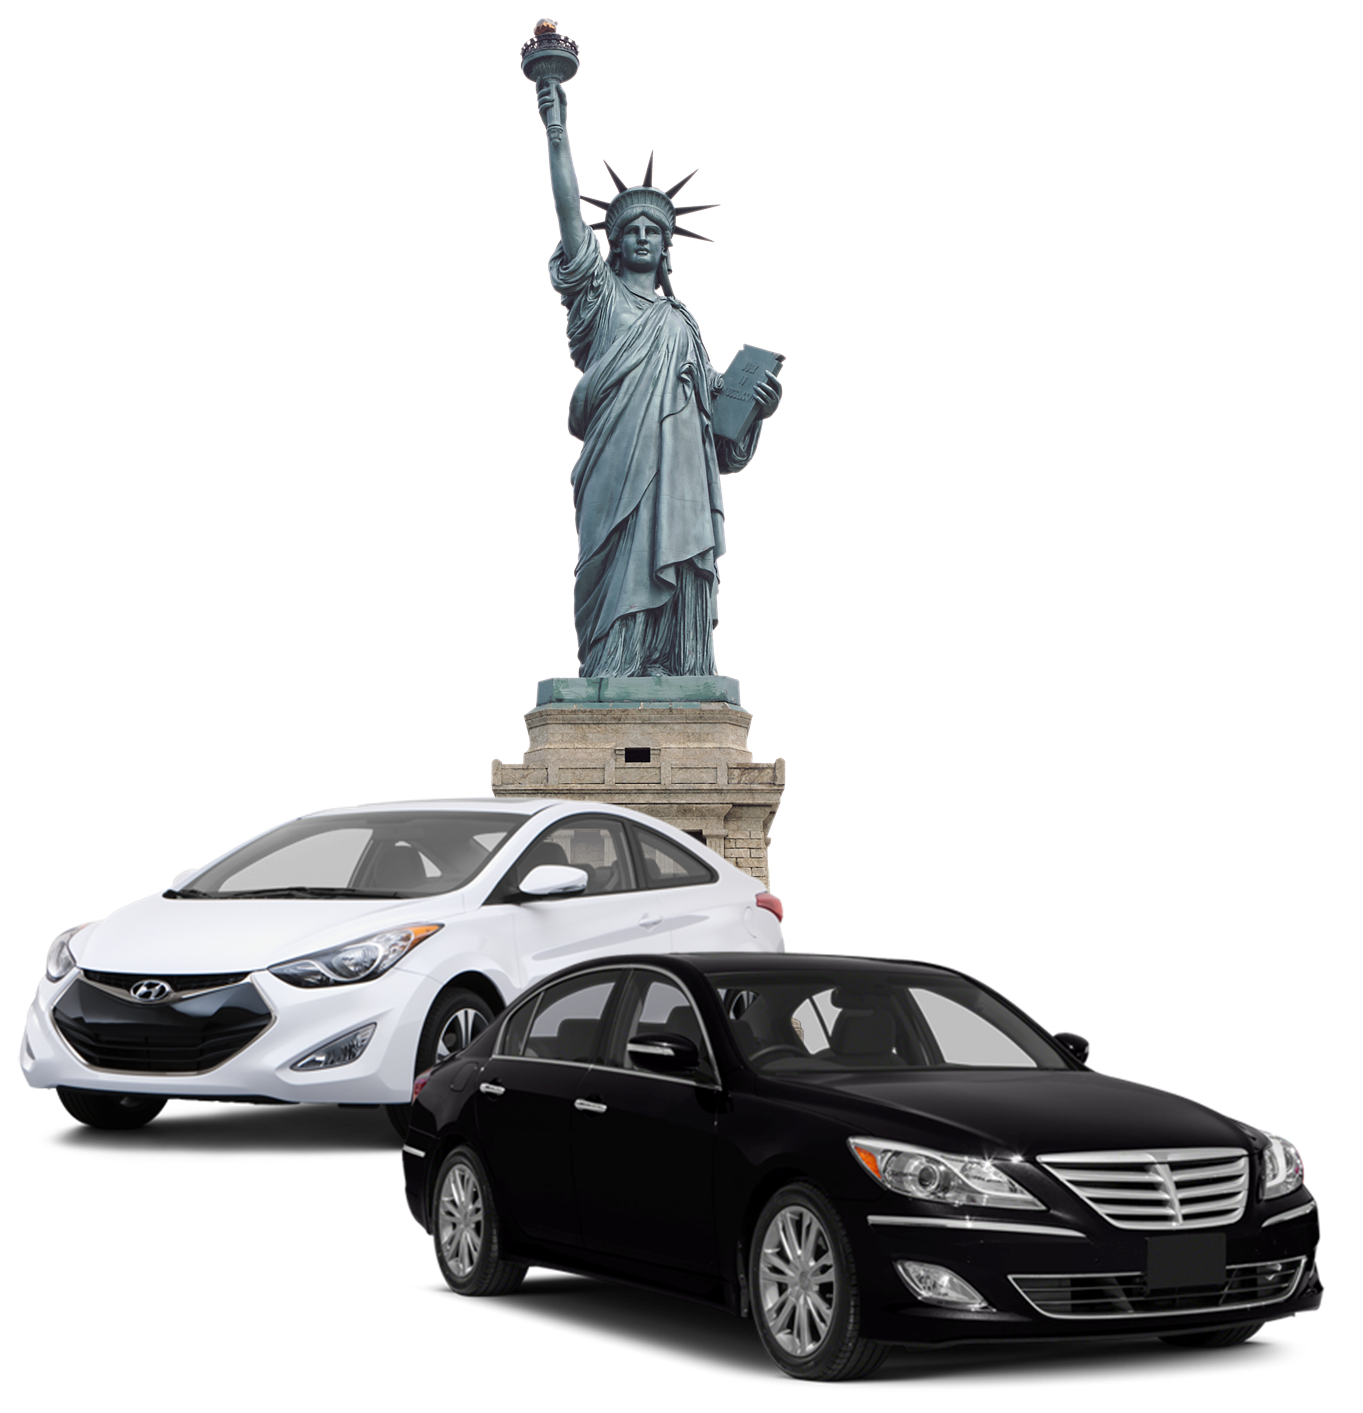 Car Sale 4th July New Hyundai Fourth Of July Sale 2015 Hyundai Lease Deals Nashua Hyundai